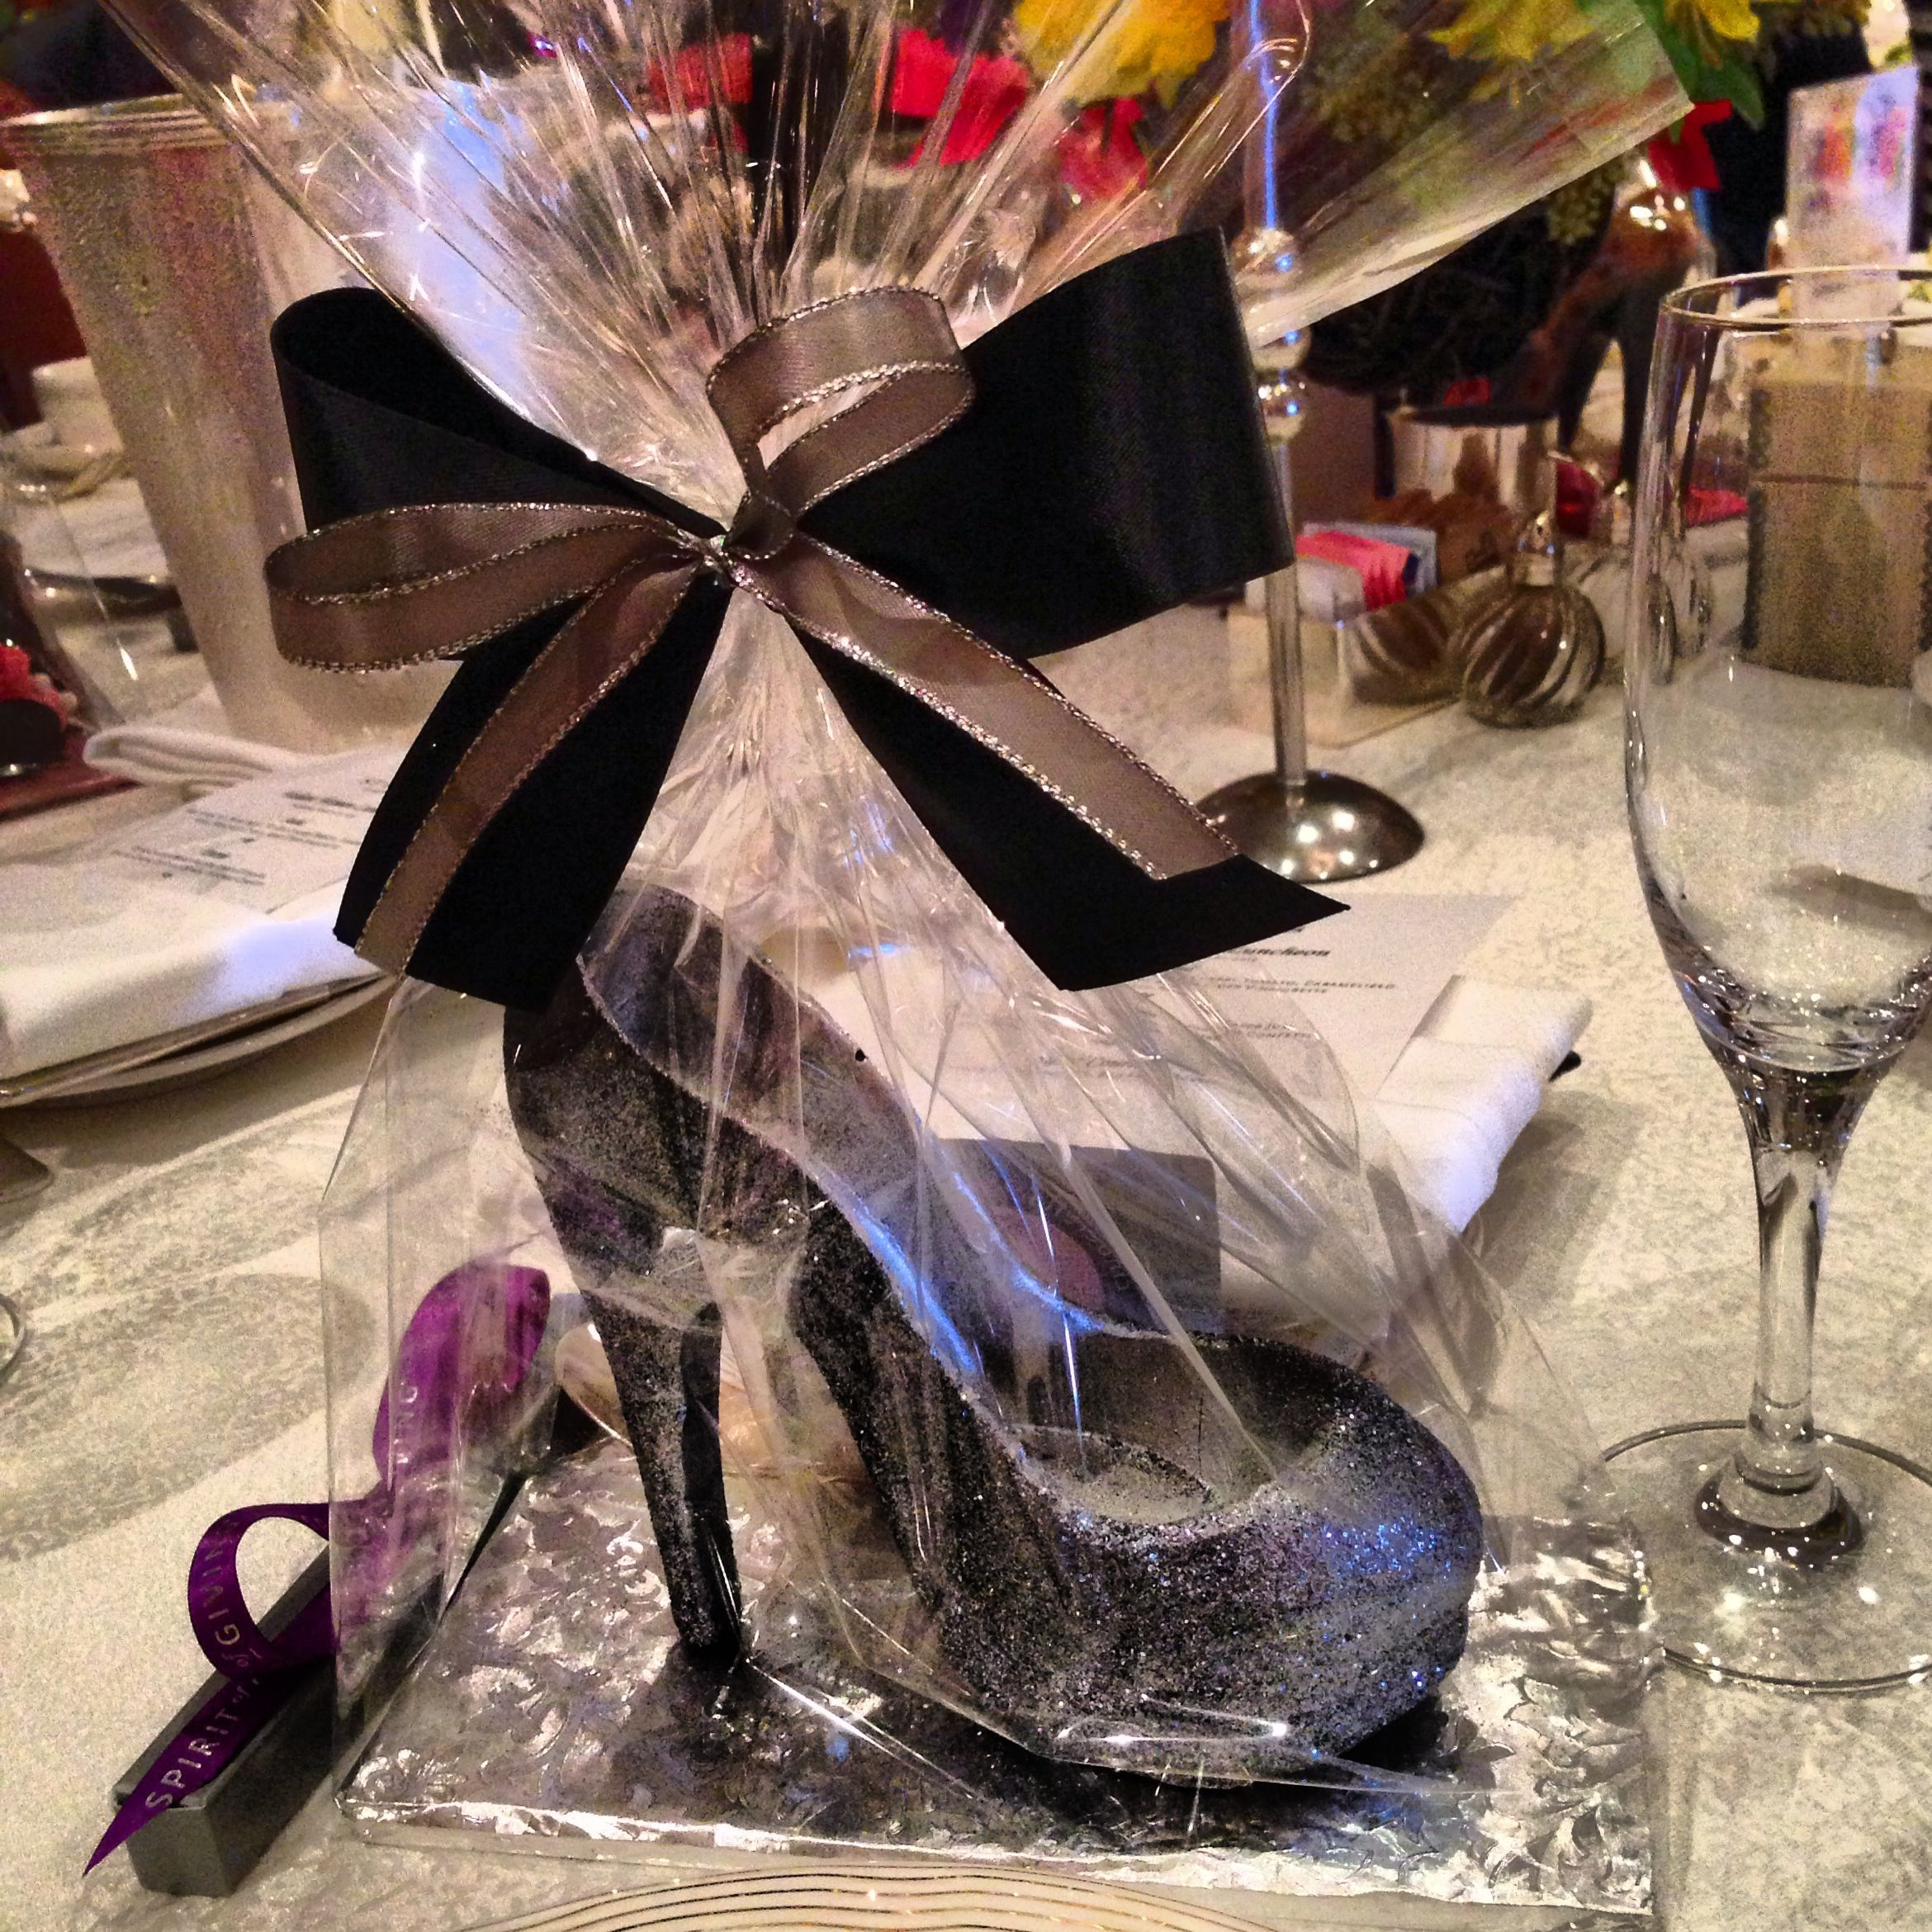 Our chocolate shoe was front and center as party favors ...